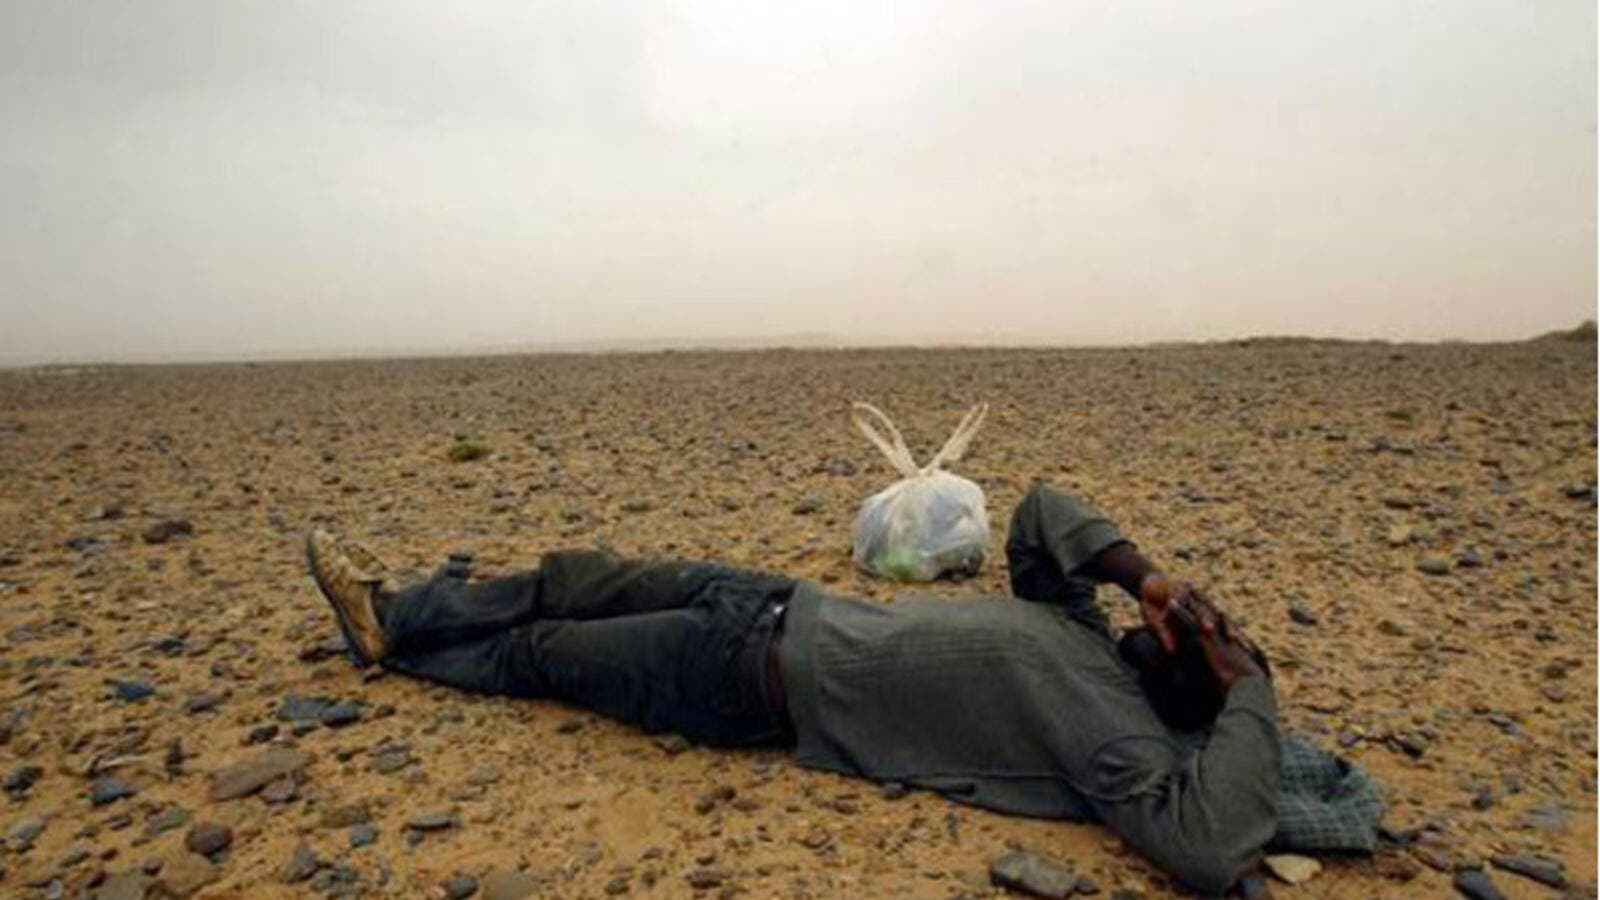 A travelling migrant resting in the middle of the Sahara Desert, near the border with Algeria. (AFP/ File Photo)